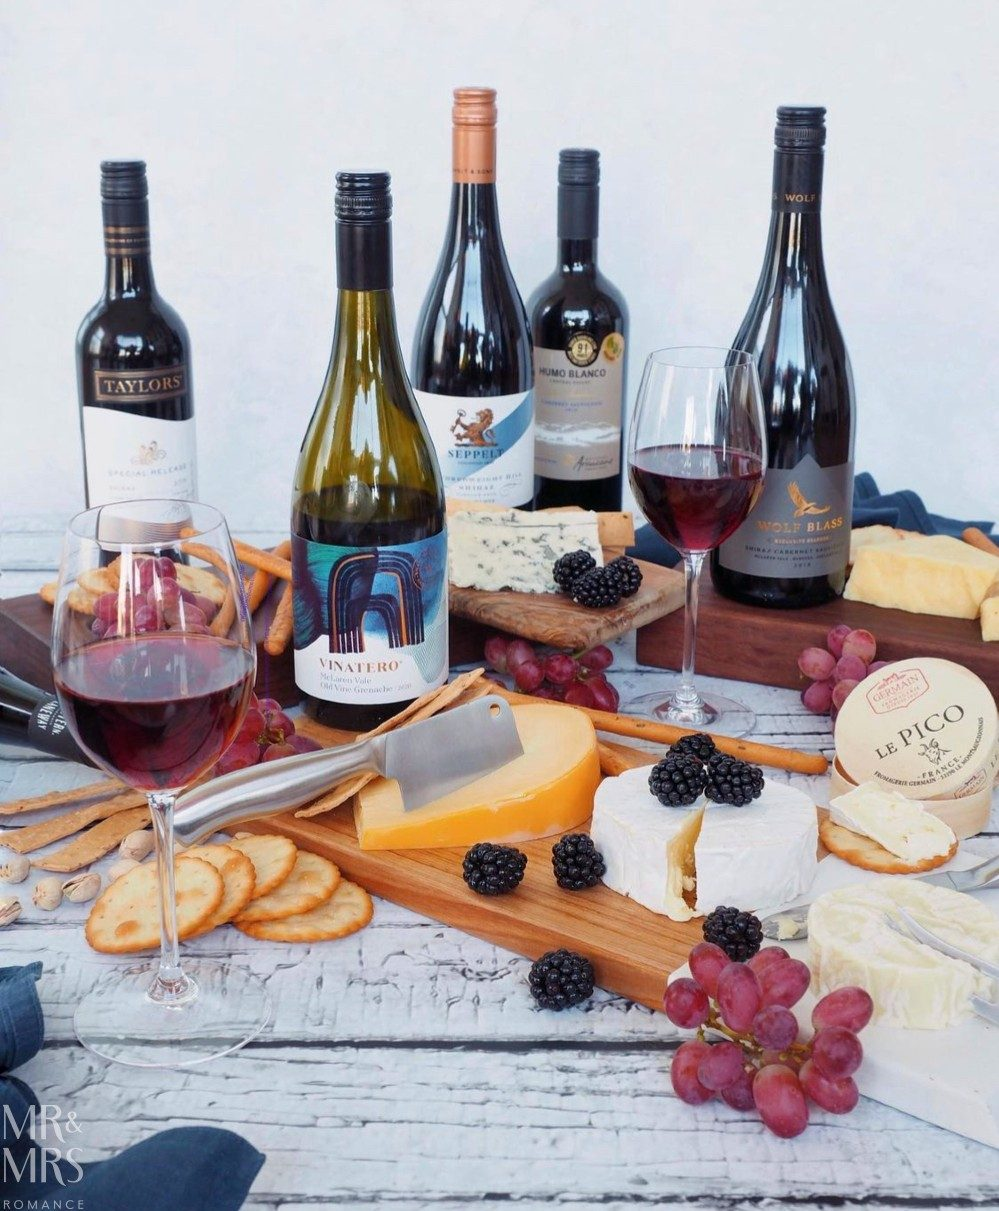 Weekly Edition - Aldi Wine and Cheese night